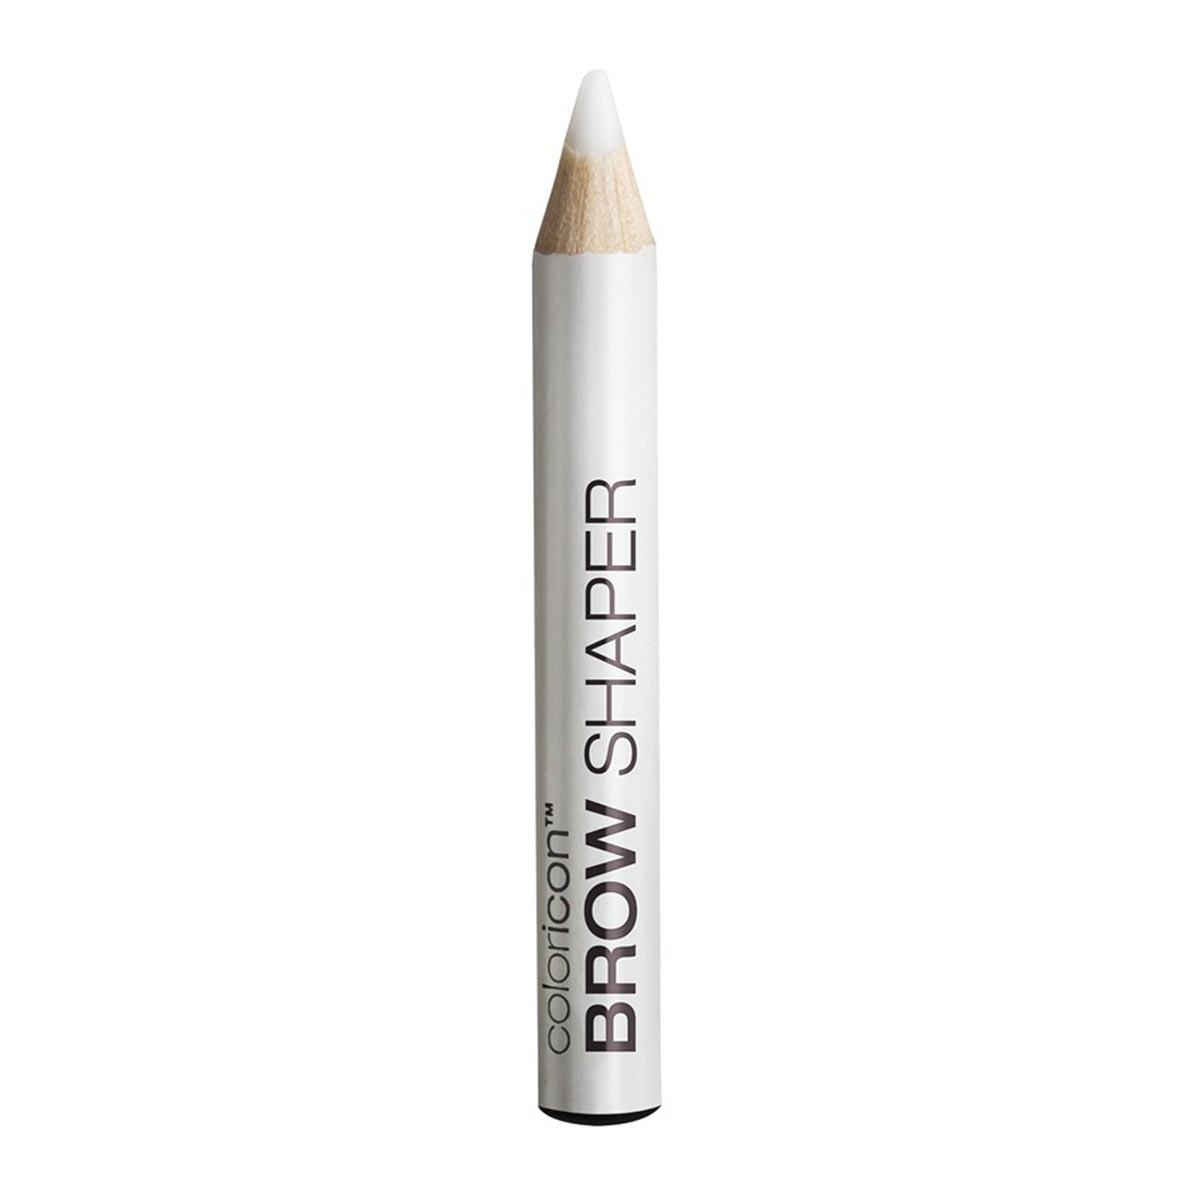 Wet n wild fragrances Coloricon Brow Shaper A Clear Conscience